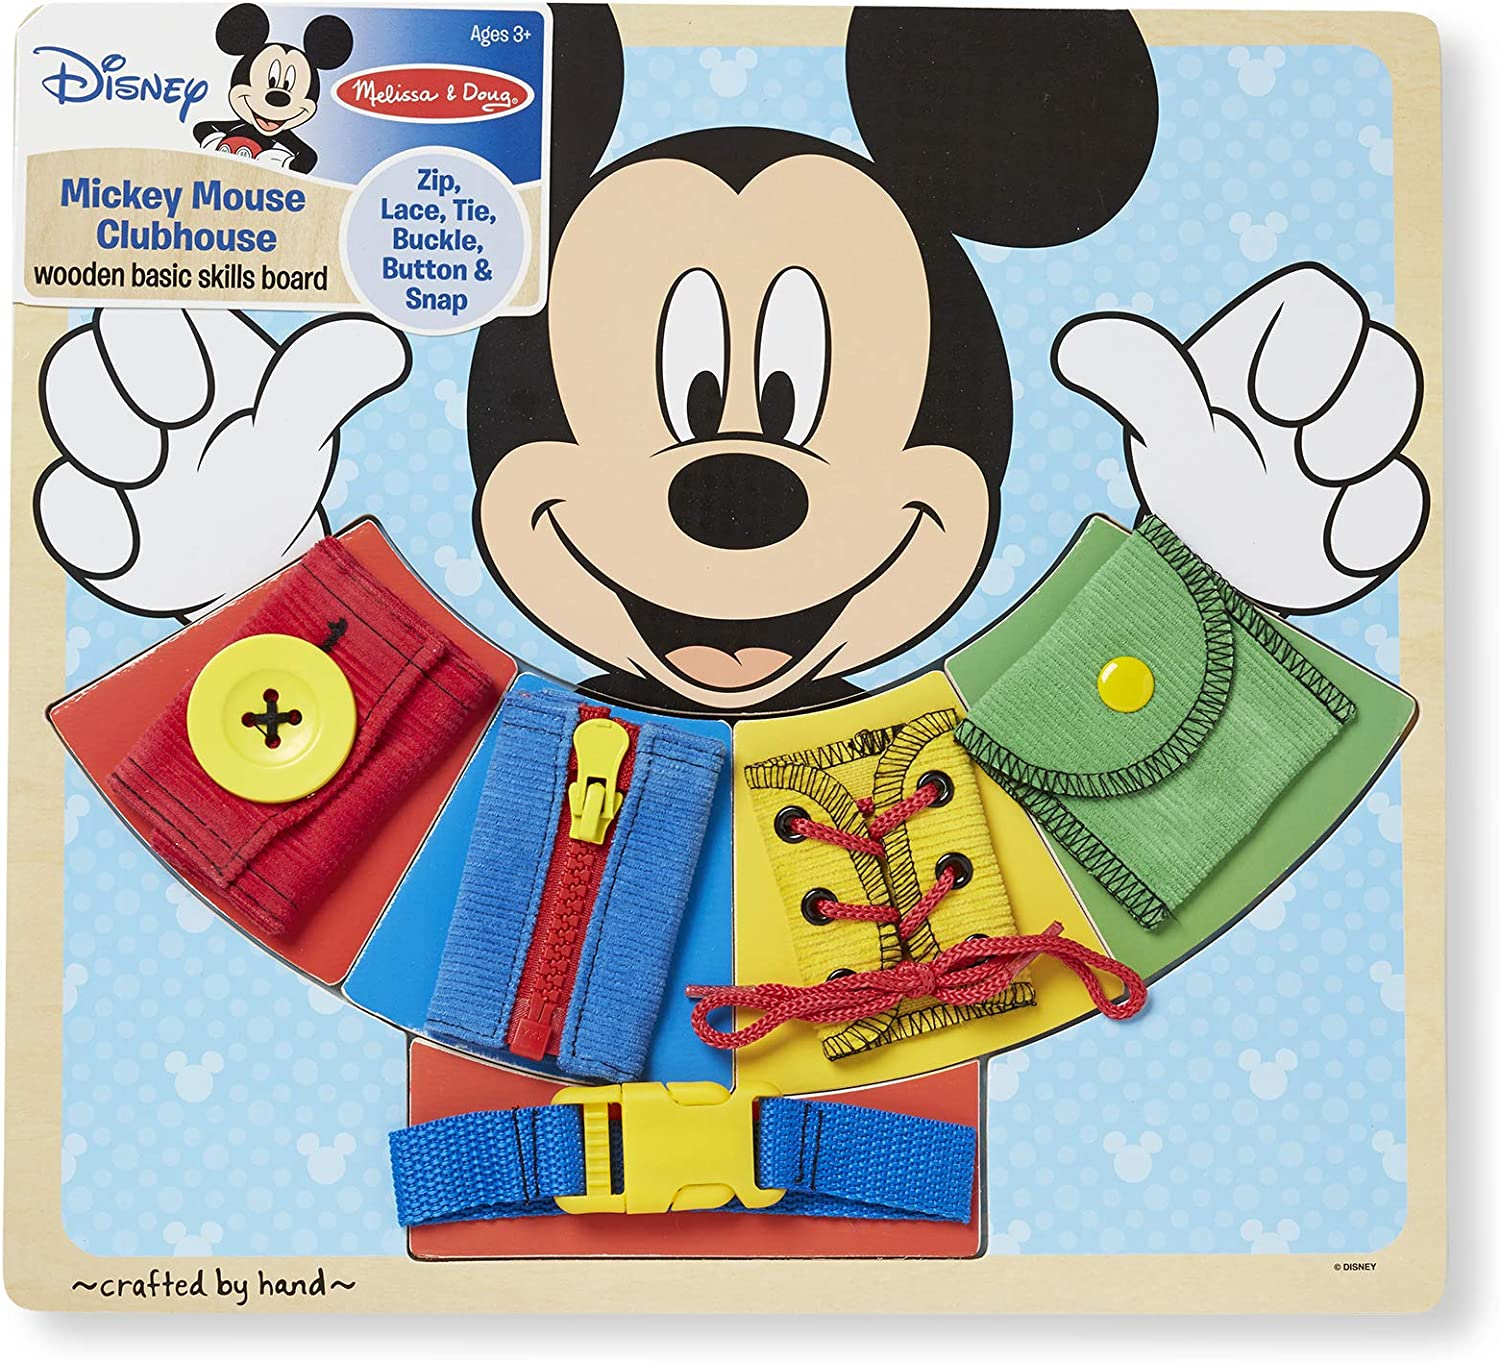 Melissa & Doug Mickey Mouse Wooden Basic Skills Board - Zip, Lace, Tie, Buckle, Button, and Snap